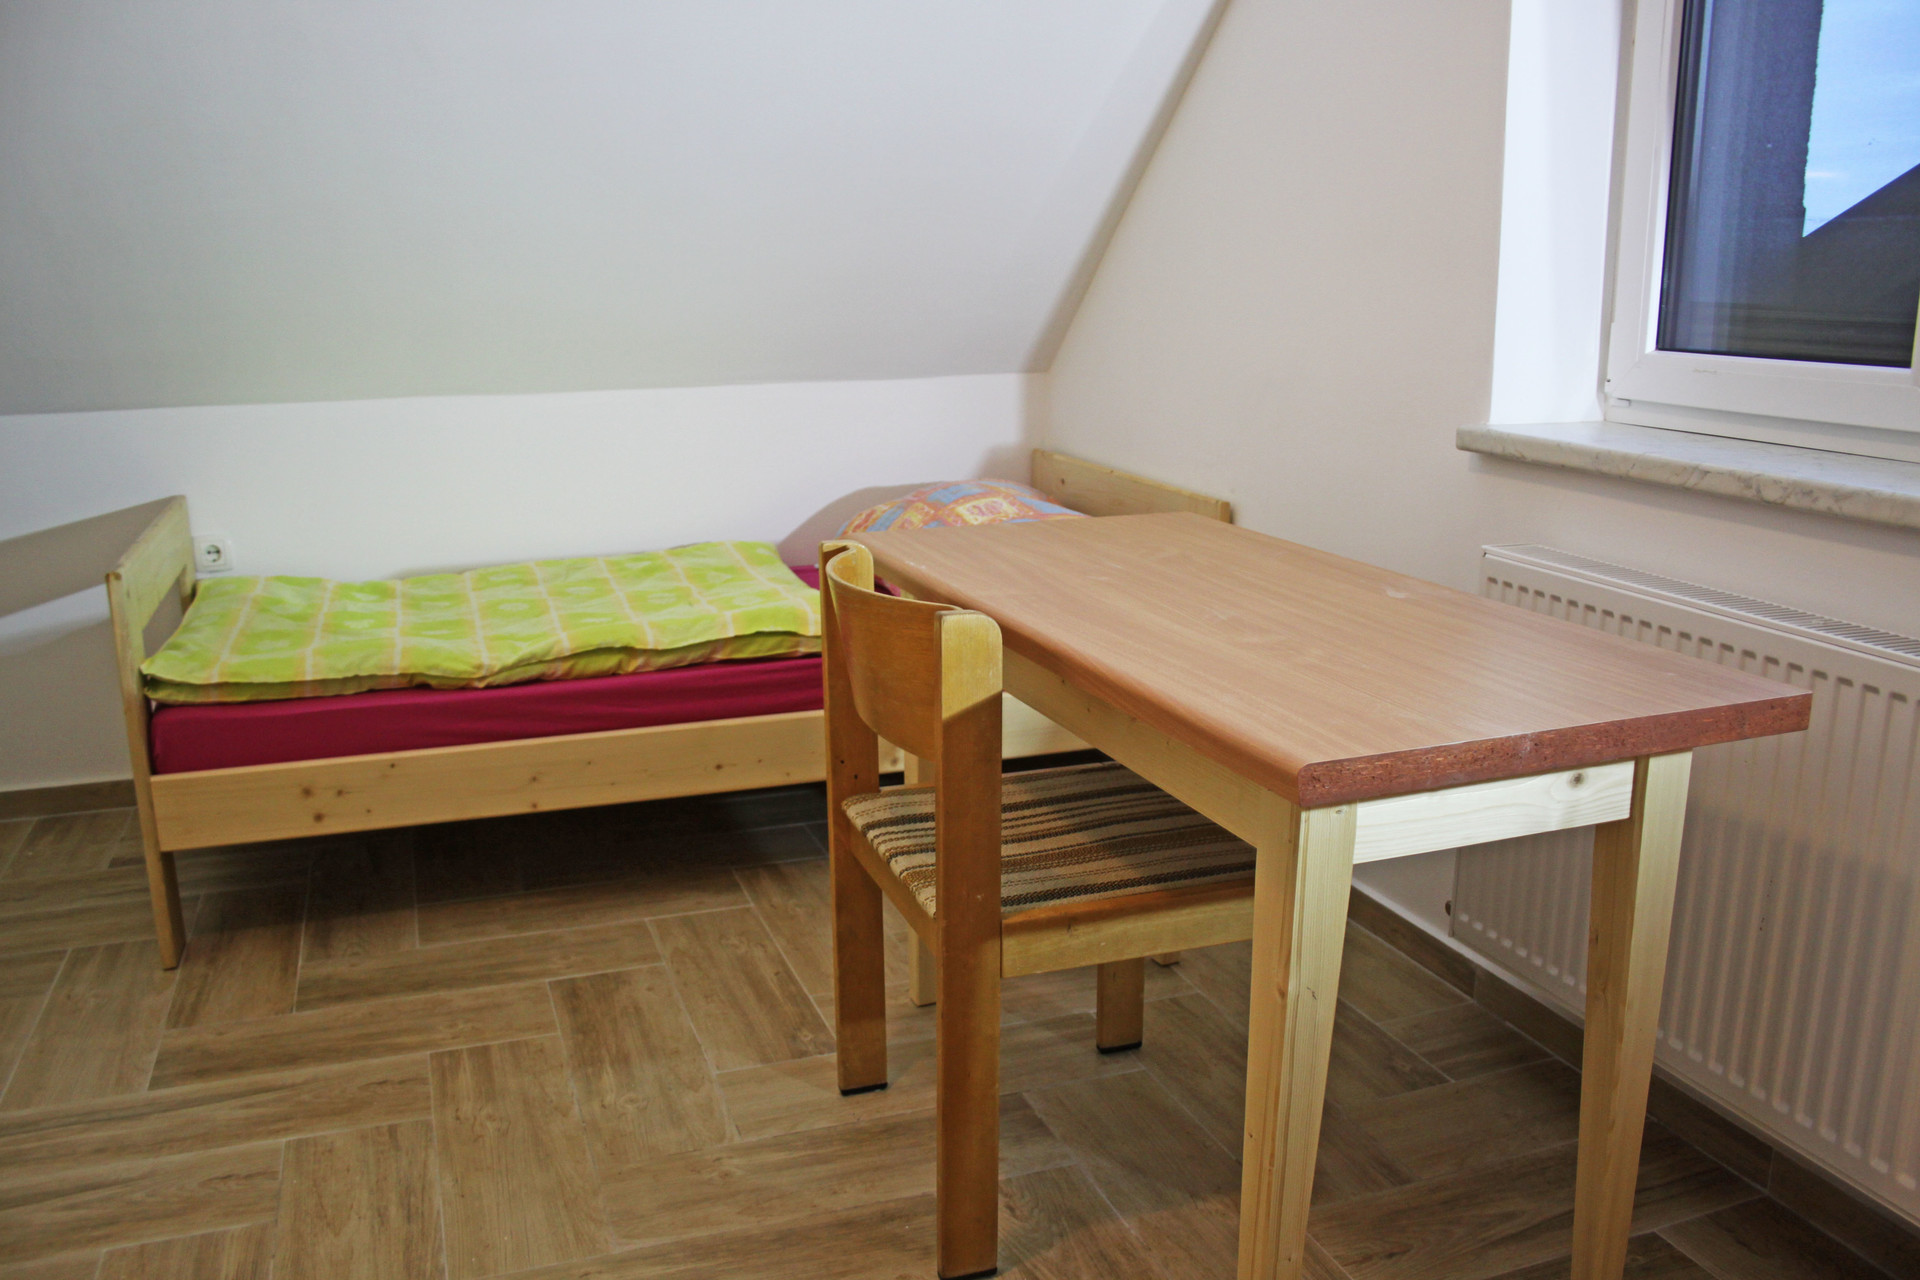 furnished-single-room-mini-studio-near-u2-metro-station-59f28af915505e9e2c47cd19ad9ac974